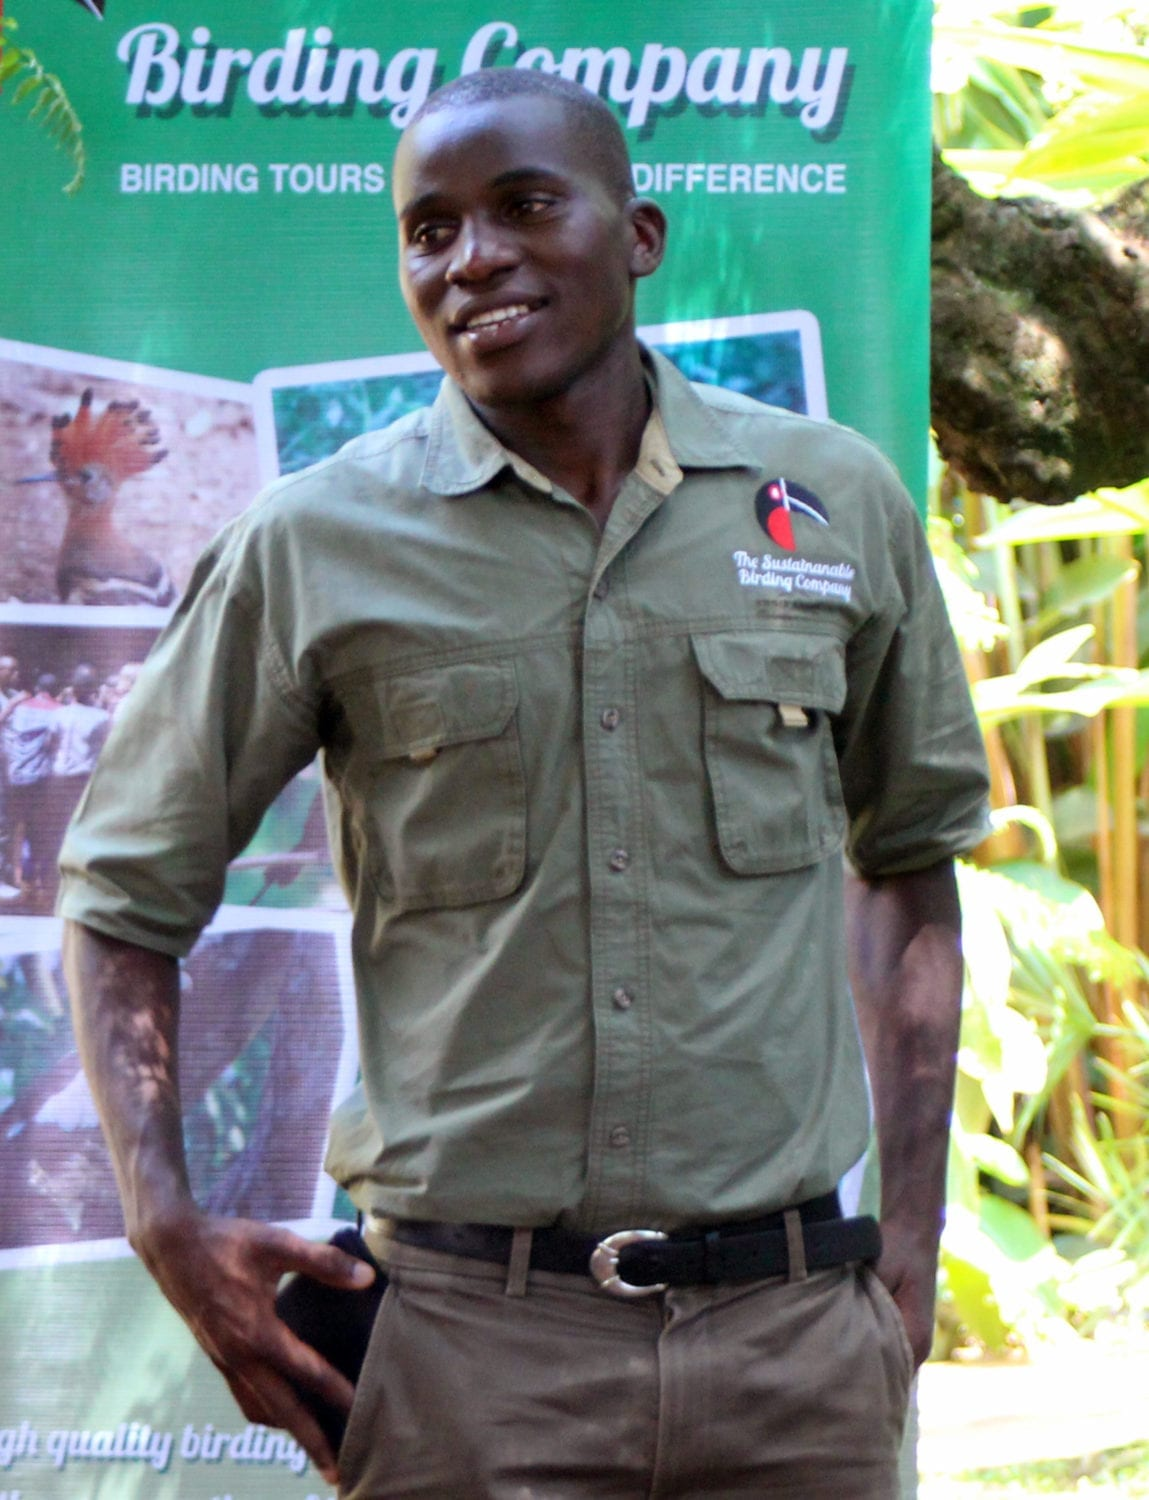 Arshley, our lead guide for Uganda Birding Tours